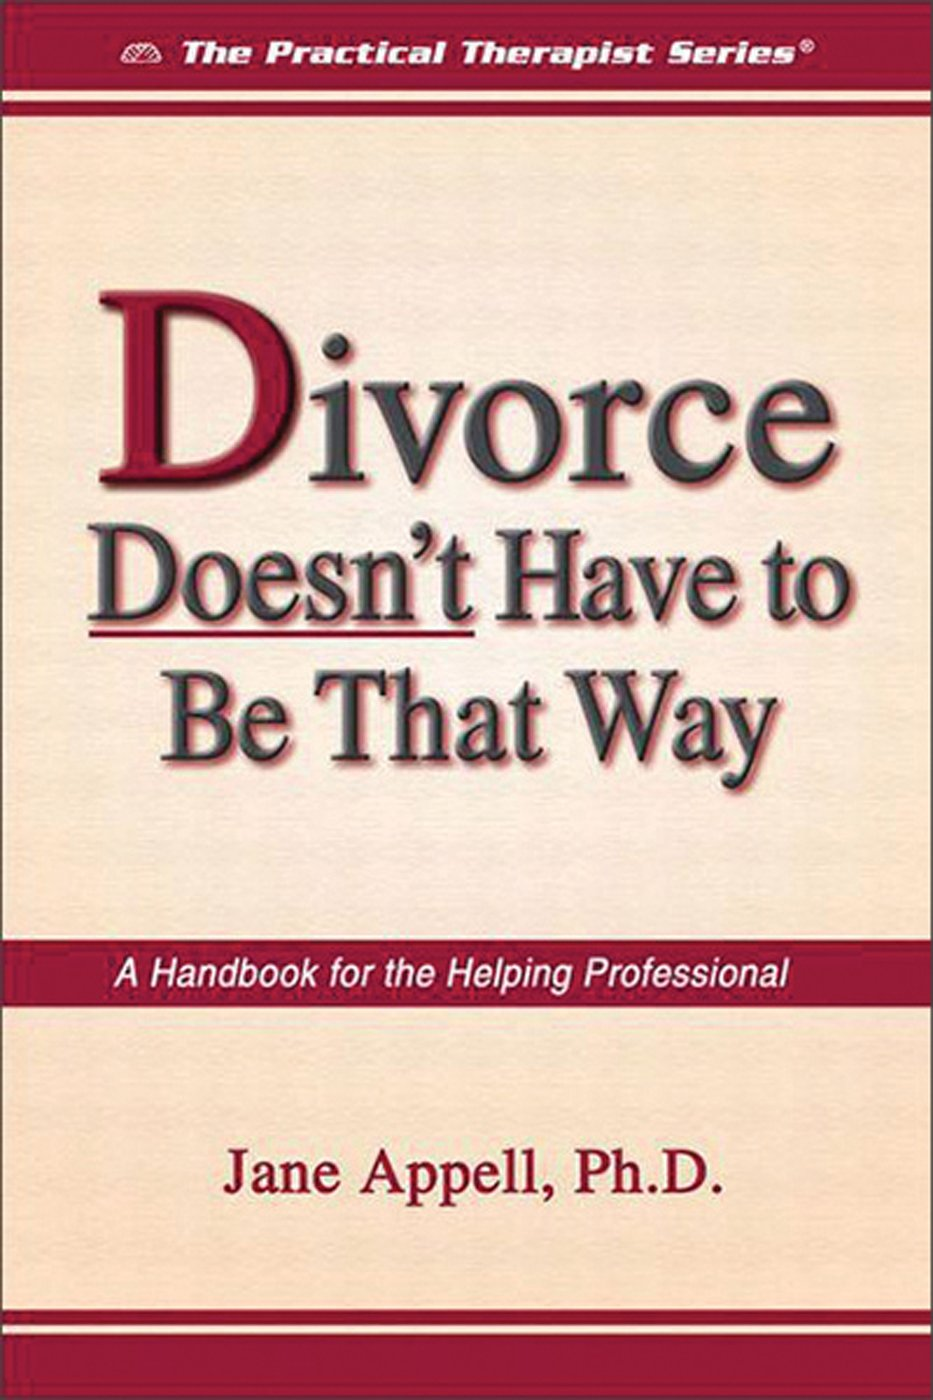 Divorce Doesn't Have to Be That Way: A Handbook for the Helping Professional (The Practical Therapist Series) ebook